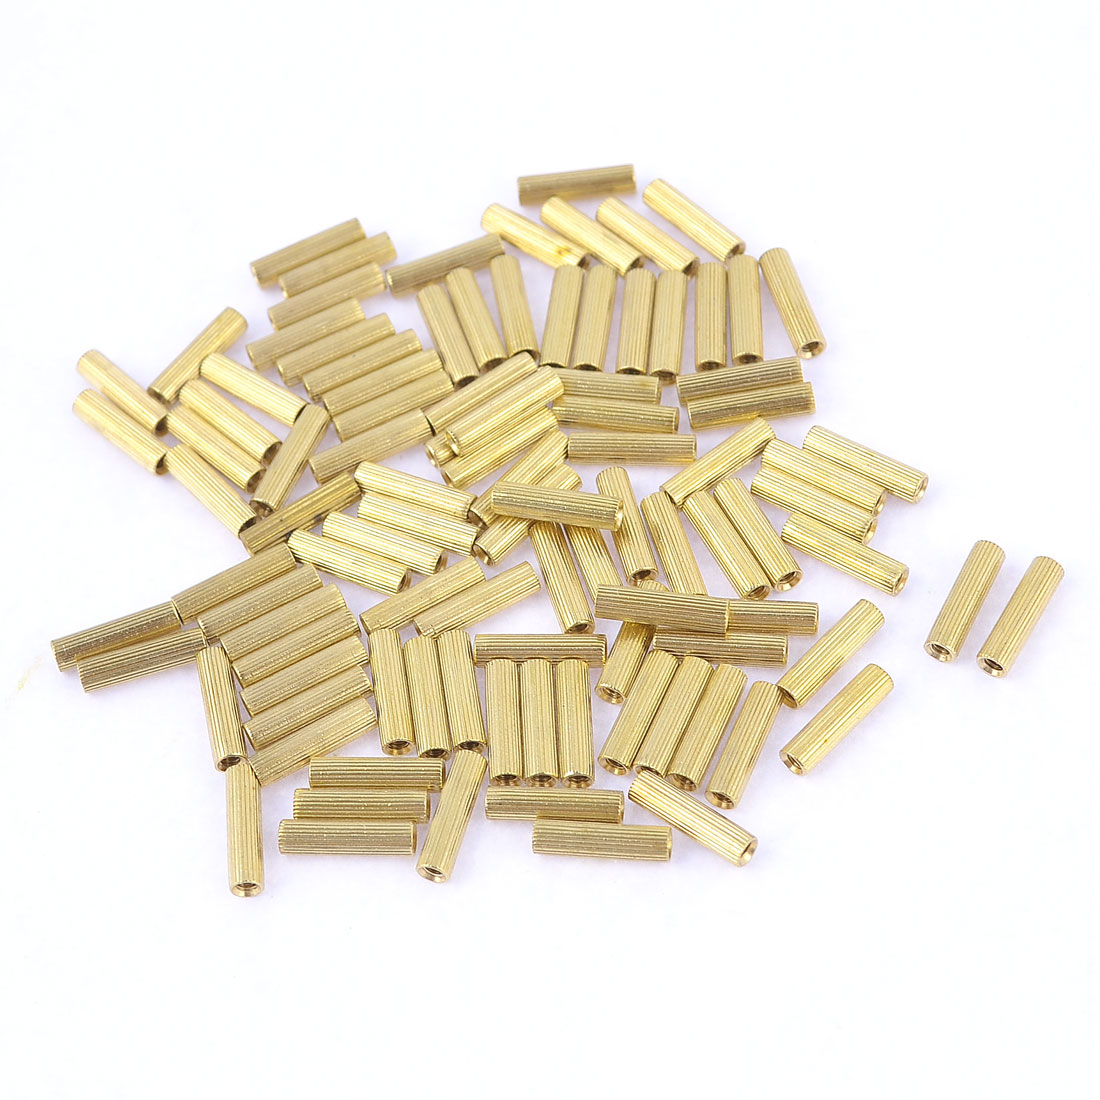 100-Pcs-Female-Threaded-Pillars-Brass-Standoff-Spacer-Gold-Tone-M2x10mm